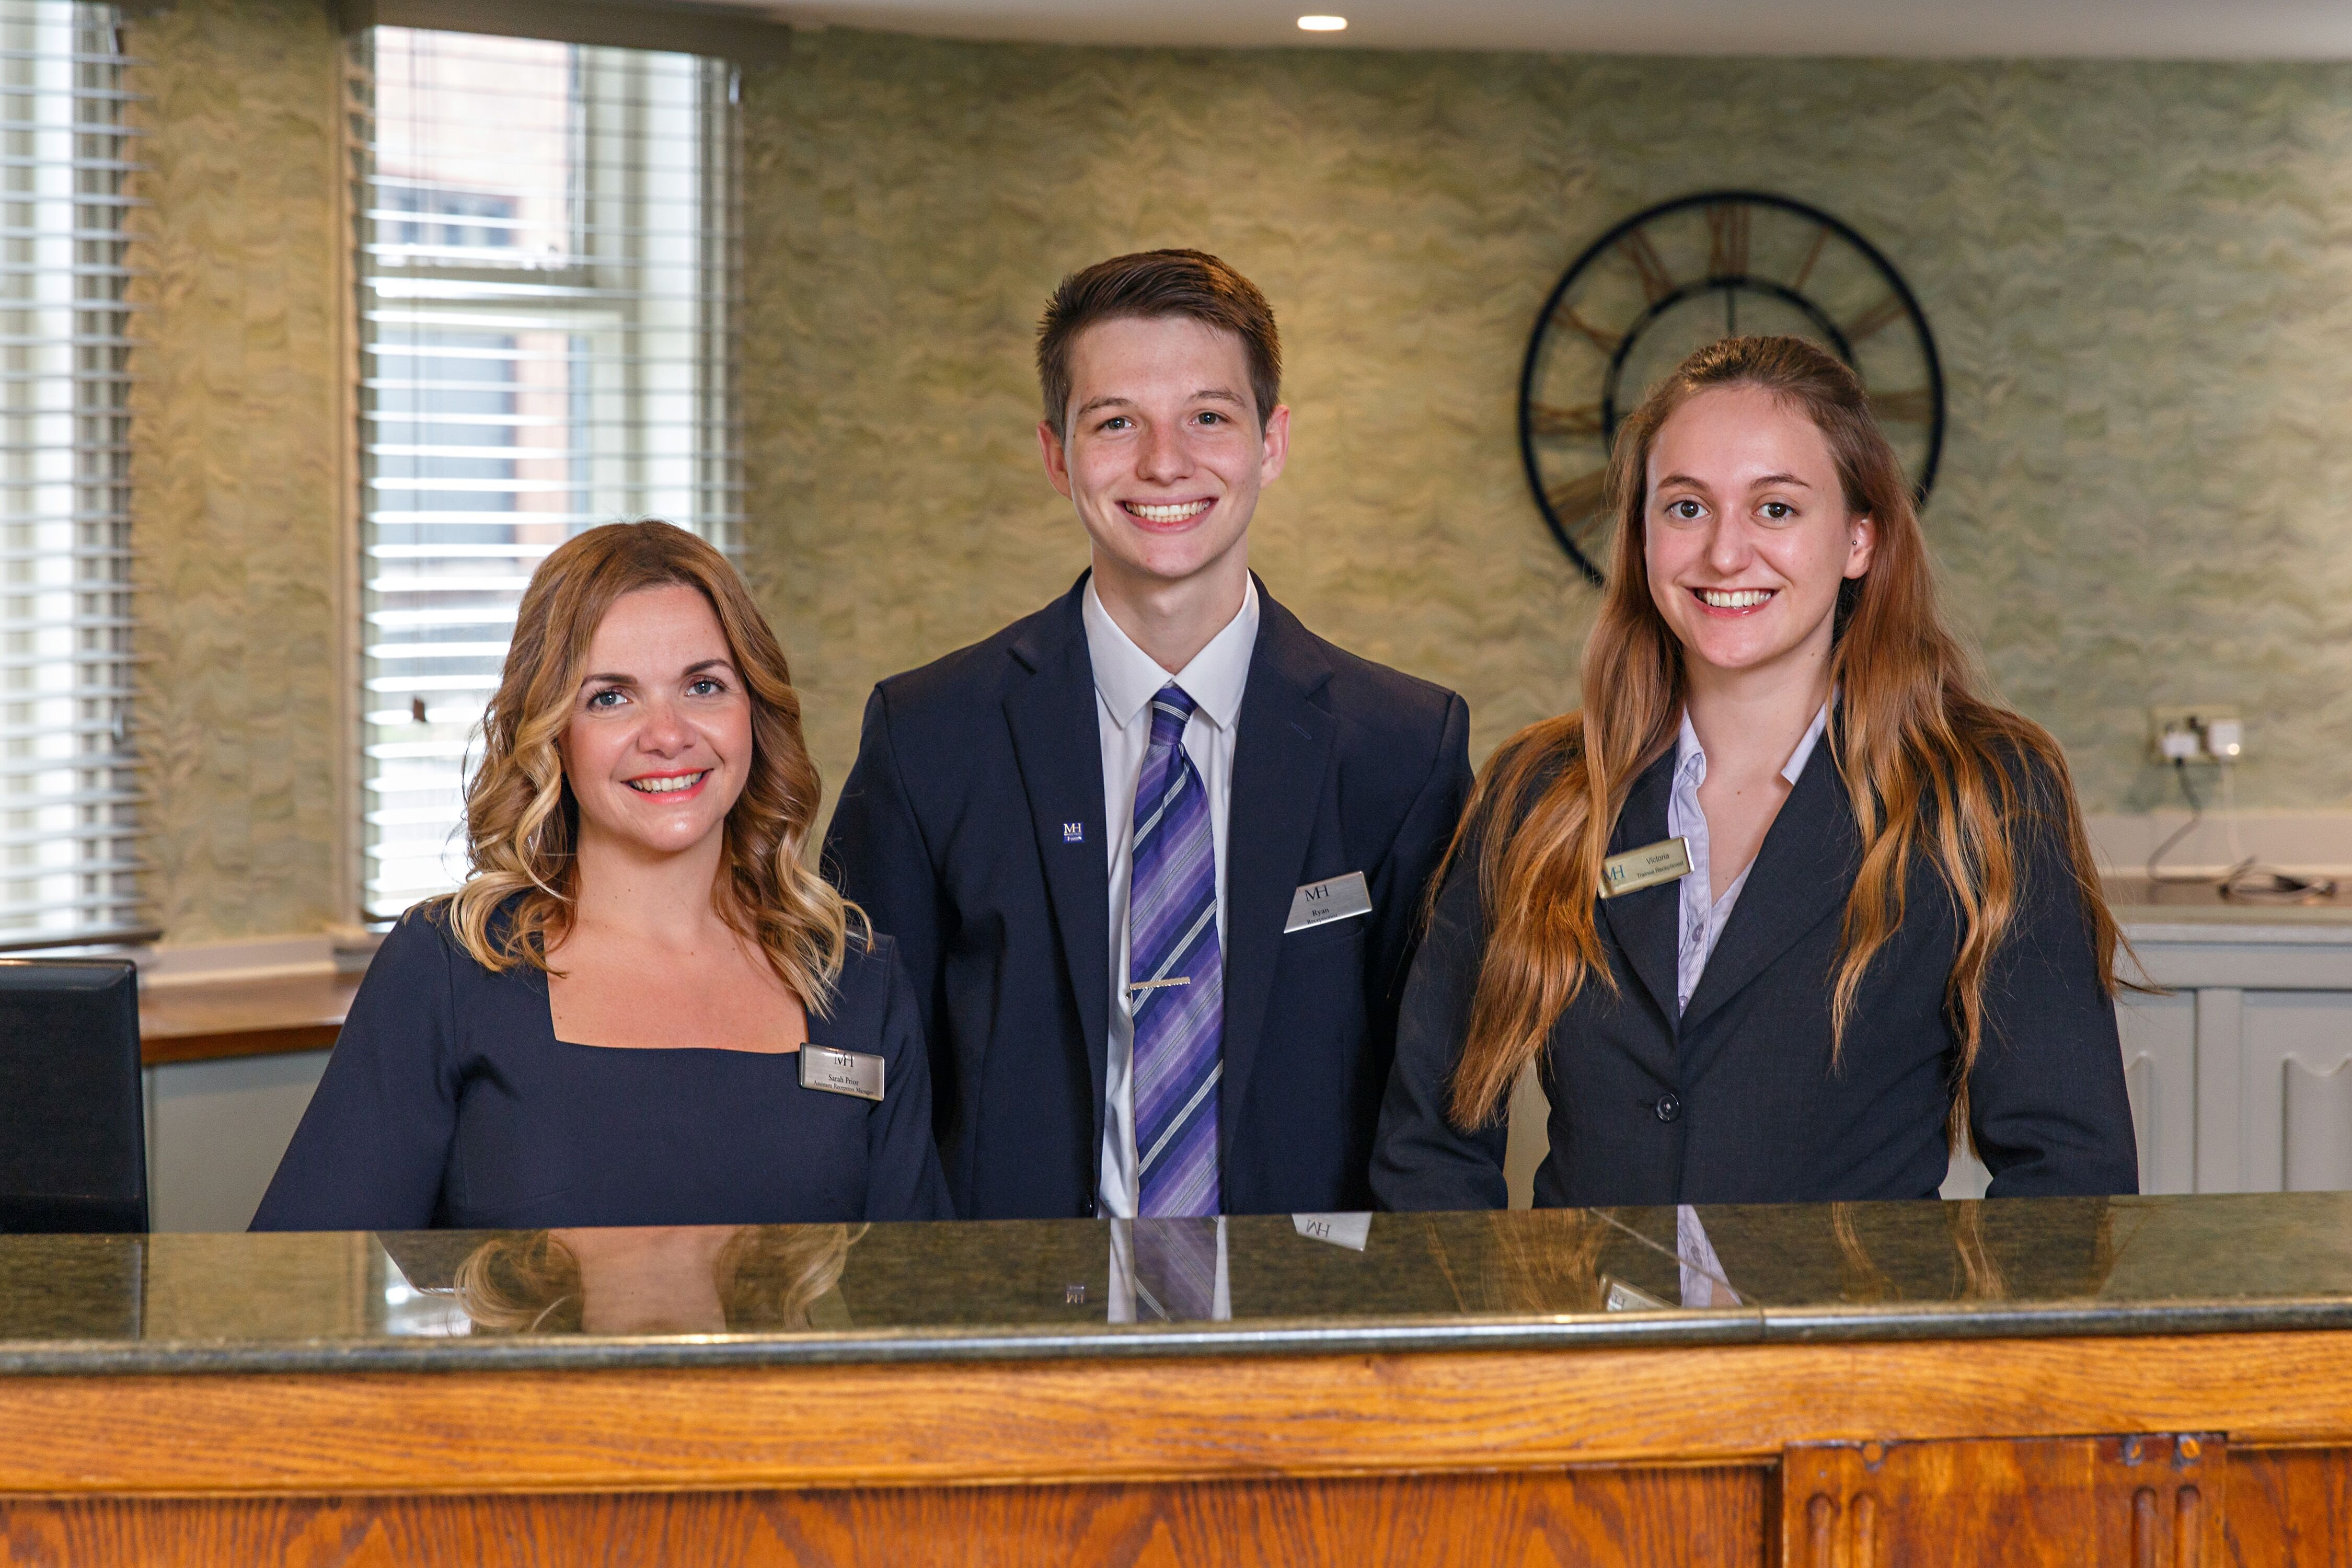 Ryan Fox, centre, with (L) Sarah Prior, Assistant Reception Manager and (R) Victoria, Trainee Receptionist, The Maids Head Hotel